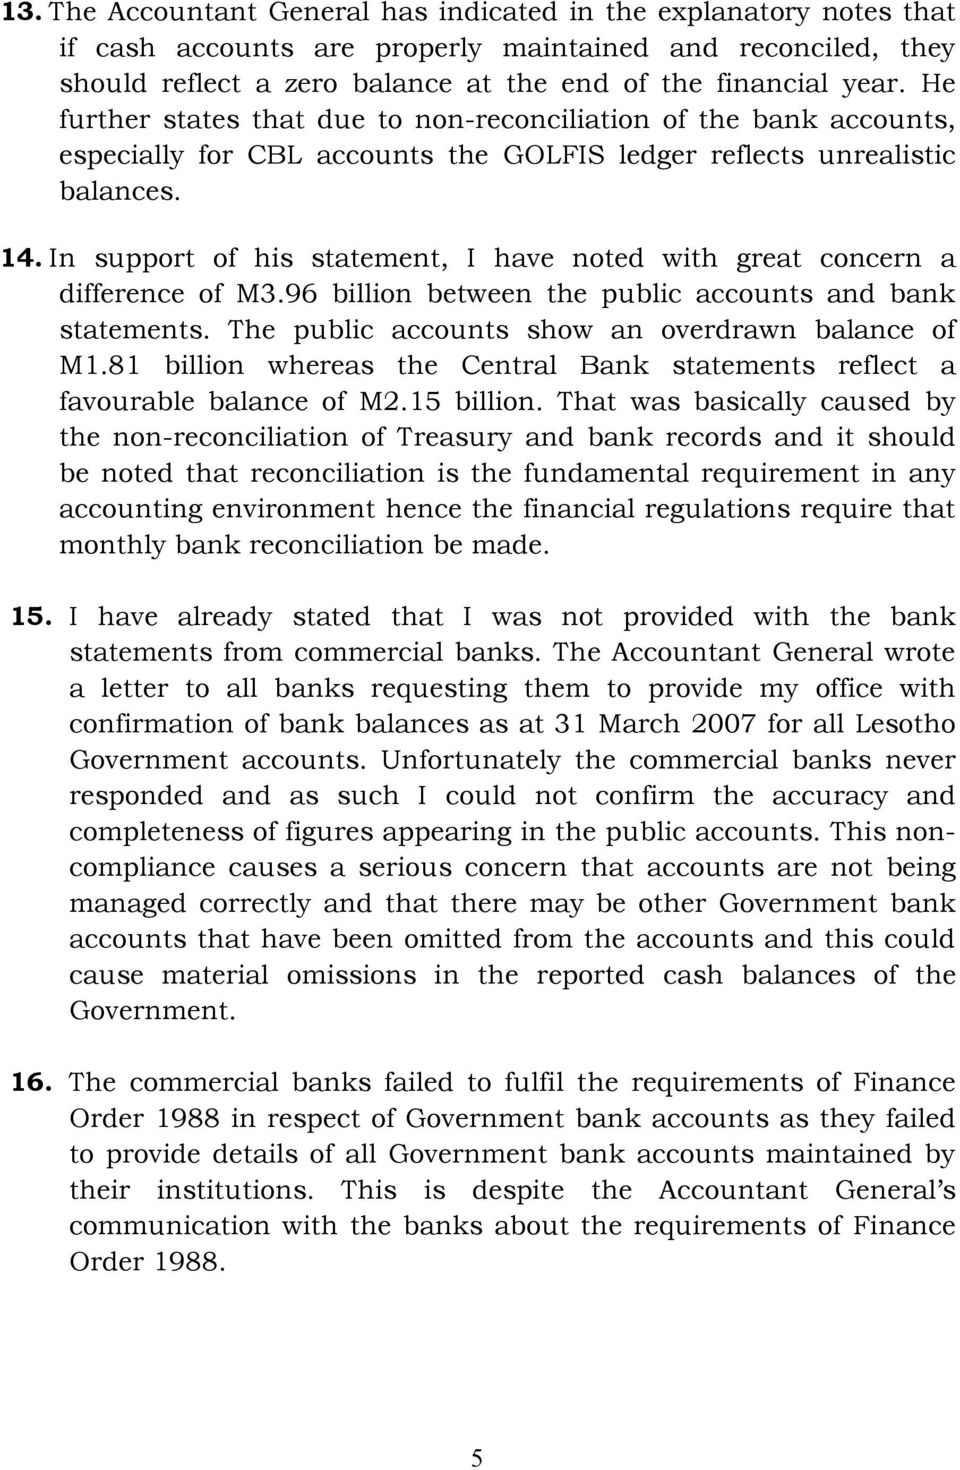 In support of his statement, I have noted with great concern a difference of M3.96 billion between the public accounts and bank statements. The public accounts show an overdrawn balance of M1.